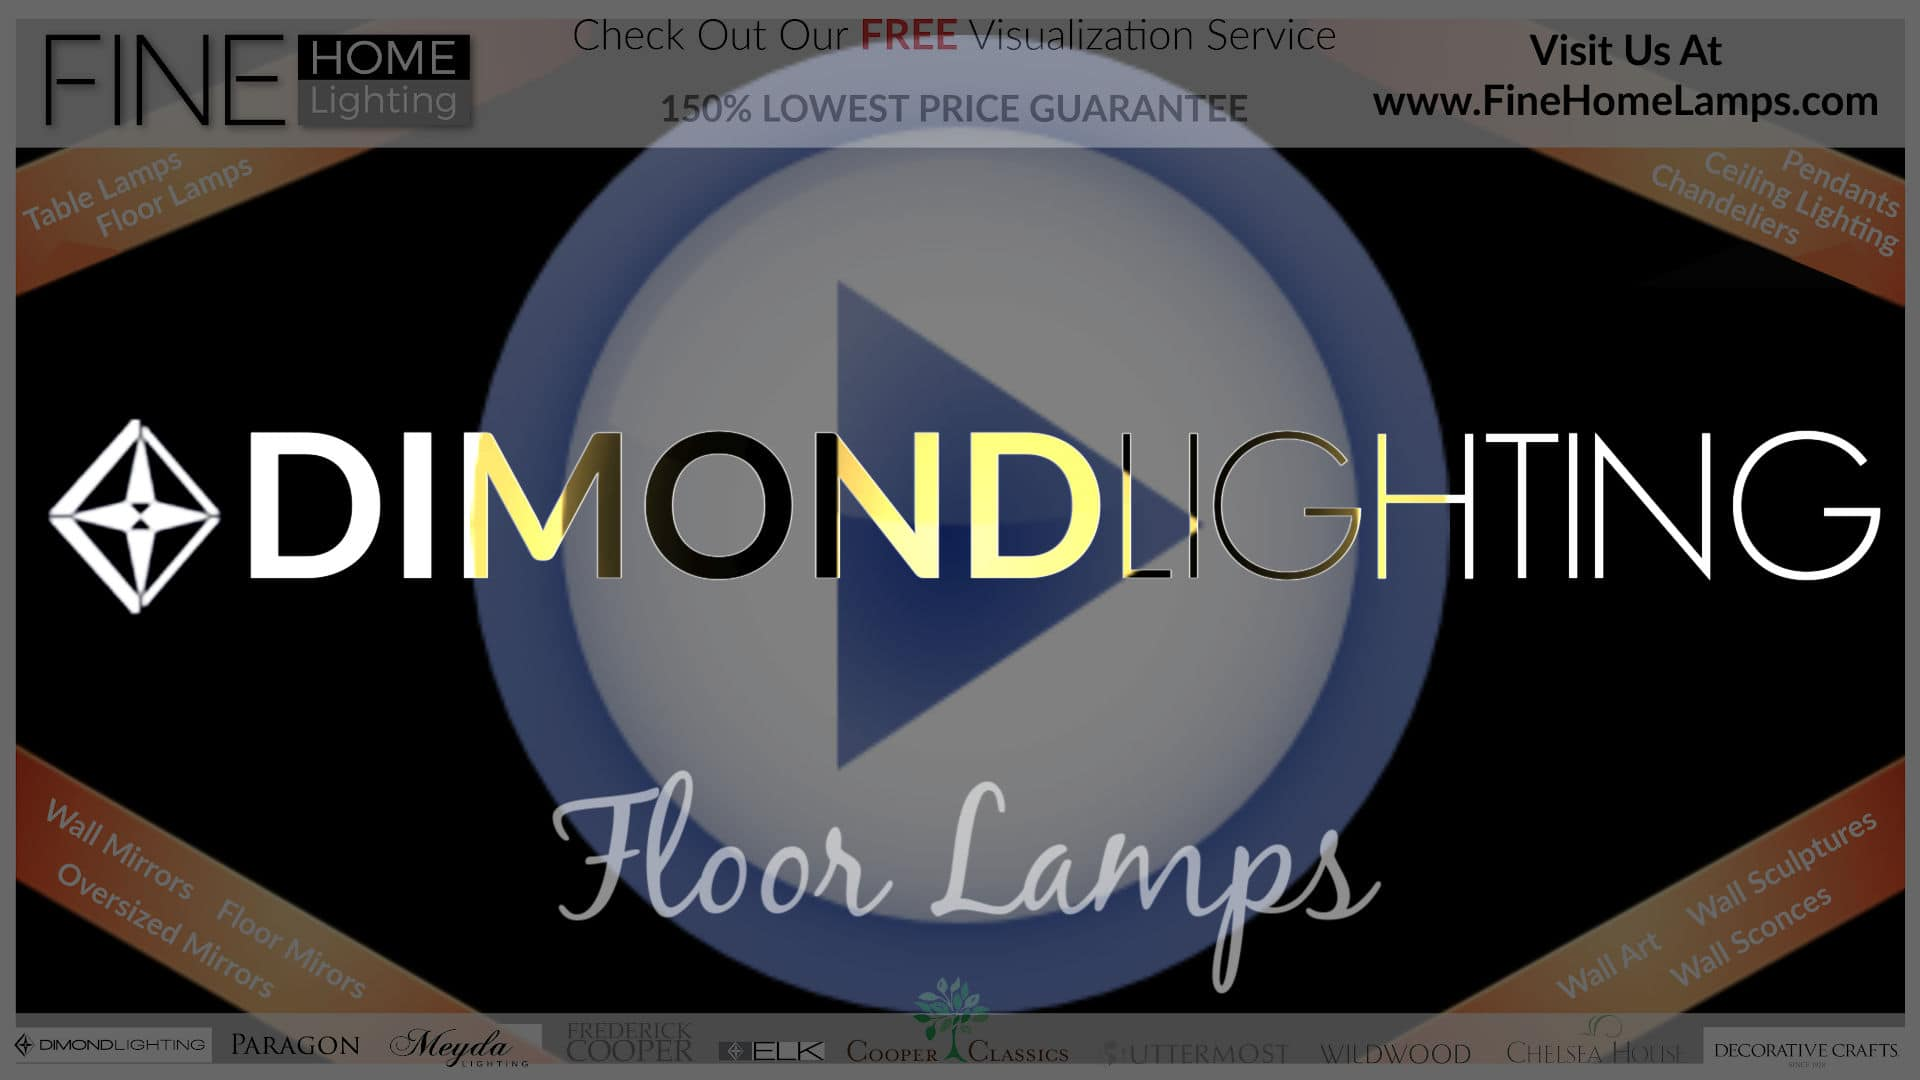 DIMOND-LIGHTING-FLOOR-LAMPS-Thanks-for-watching-this-video-Get-an-additional-15-percent-off-your-next-purchase-Use-Coupon-Code-VIDEO